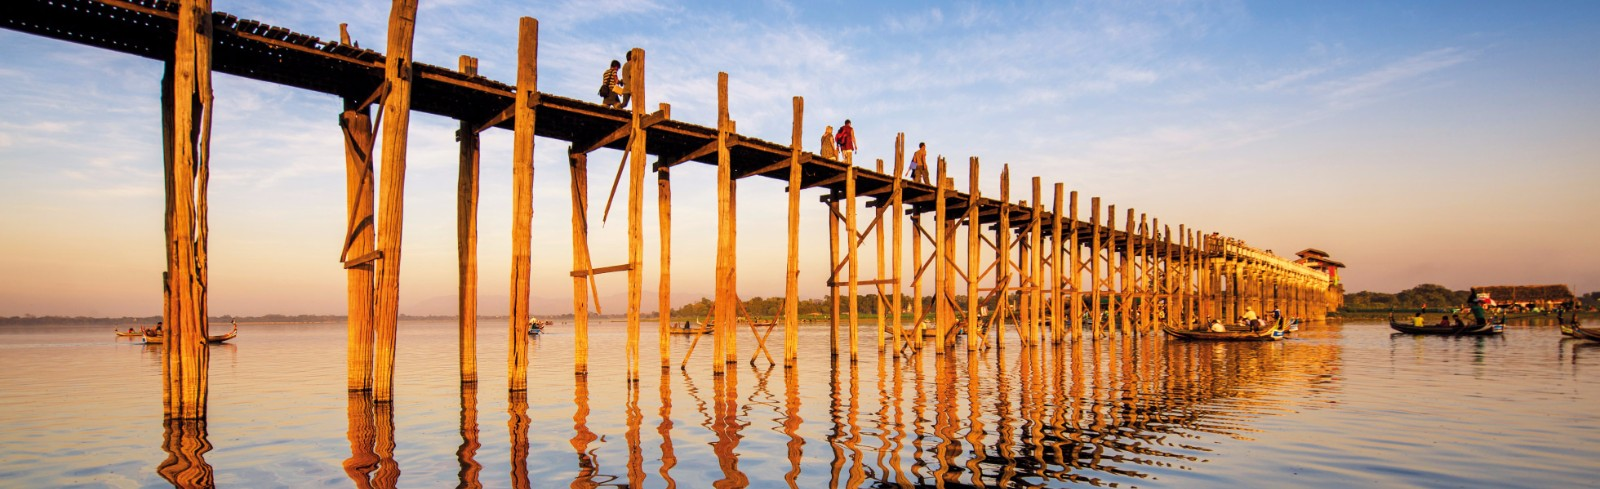 Myanmar & the Irrawaddy Tour | Wendy Wu Tours